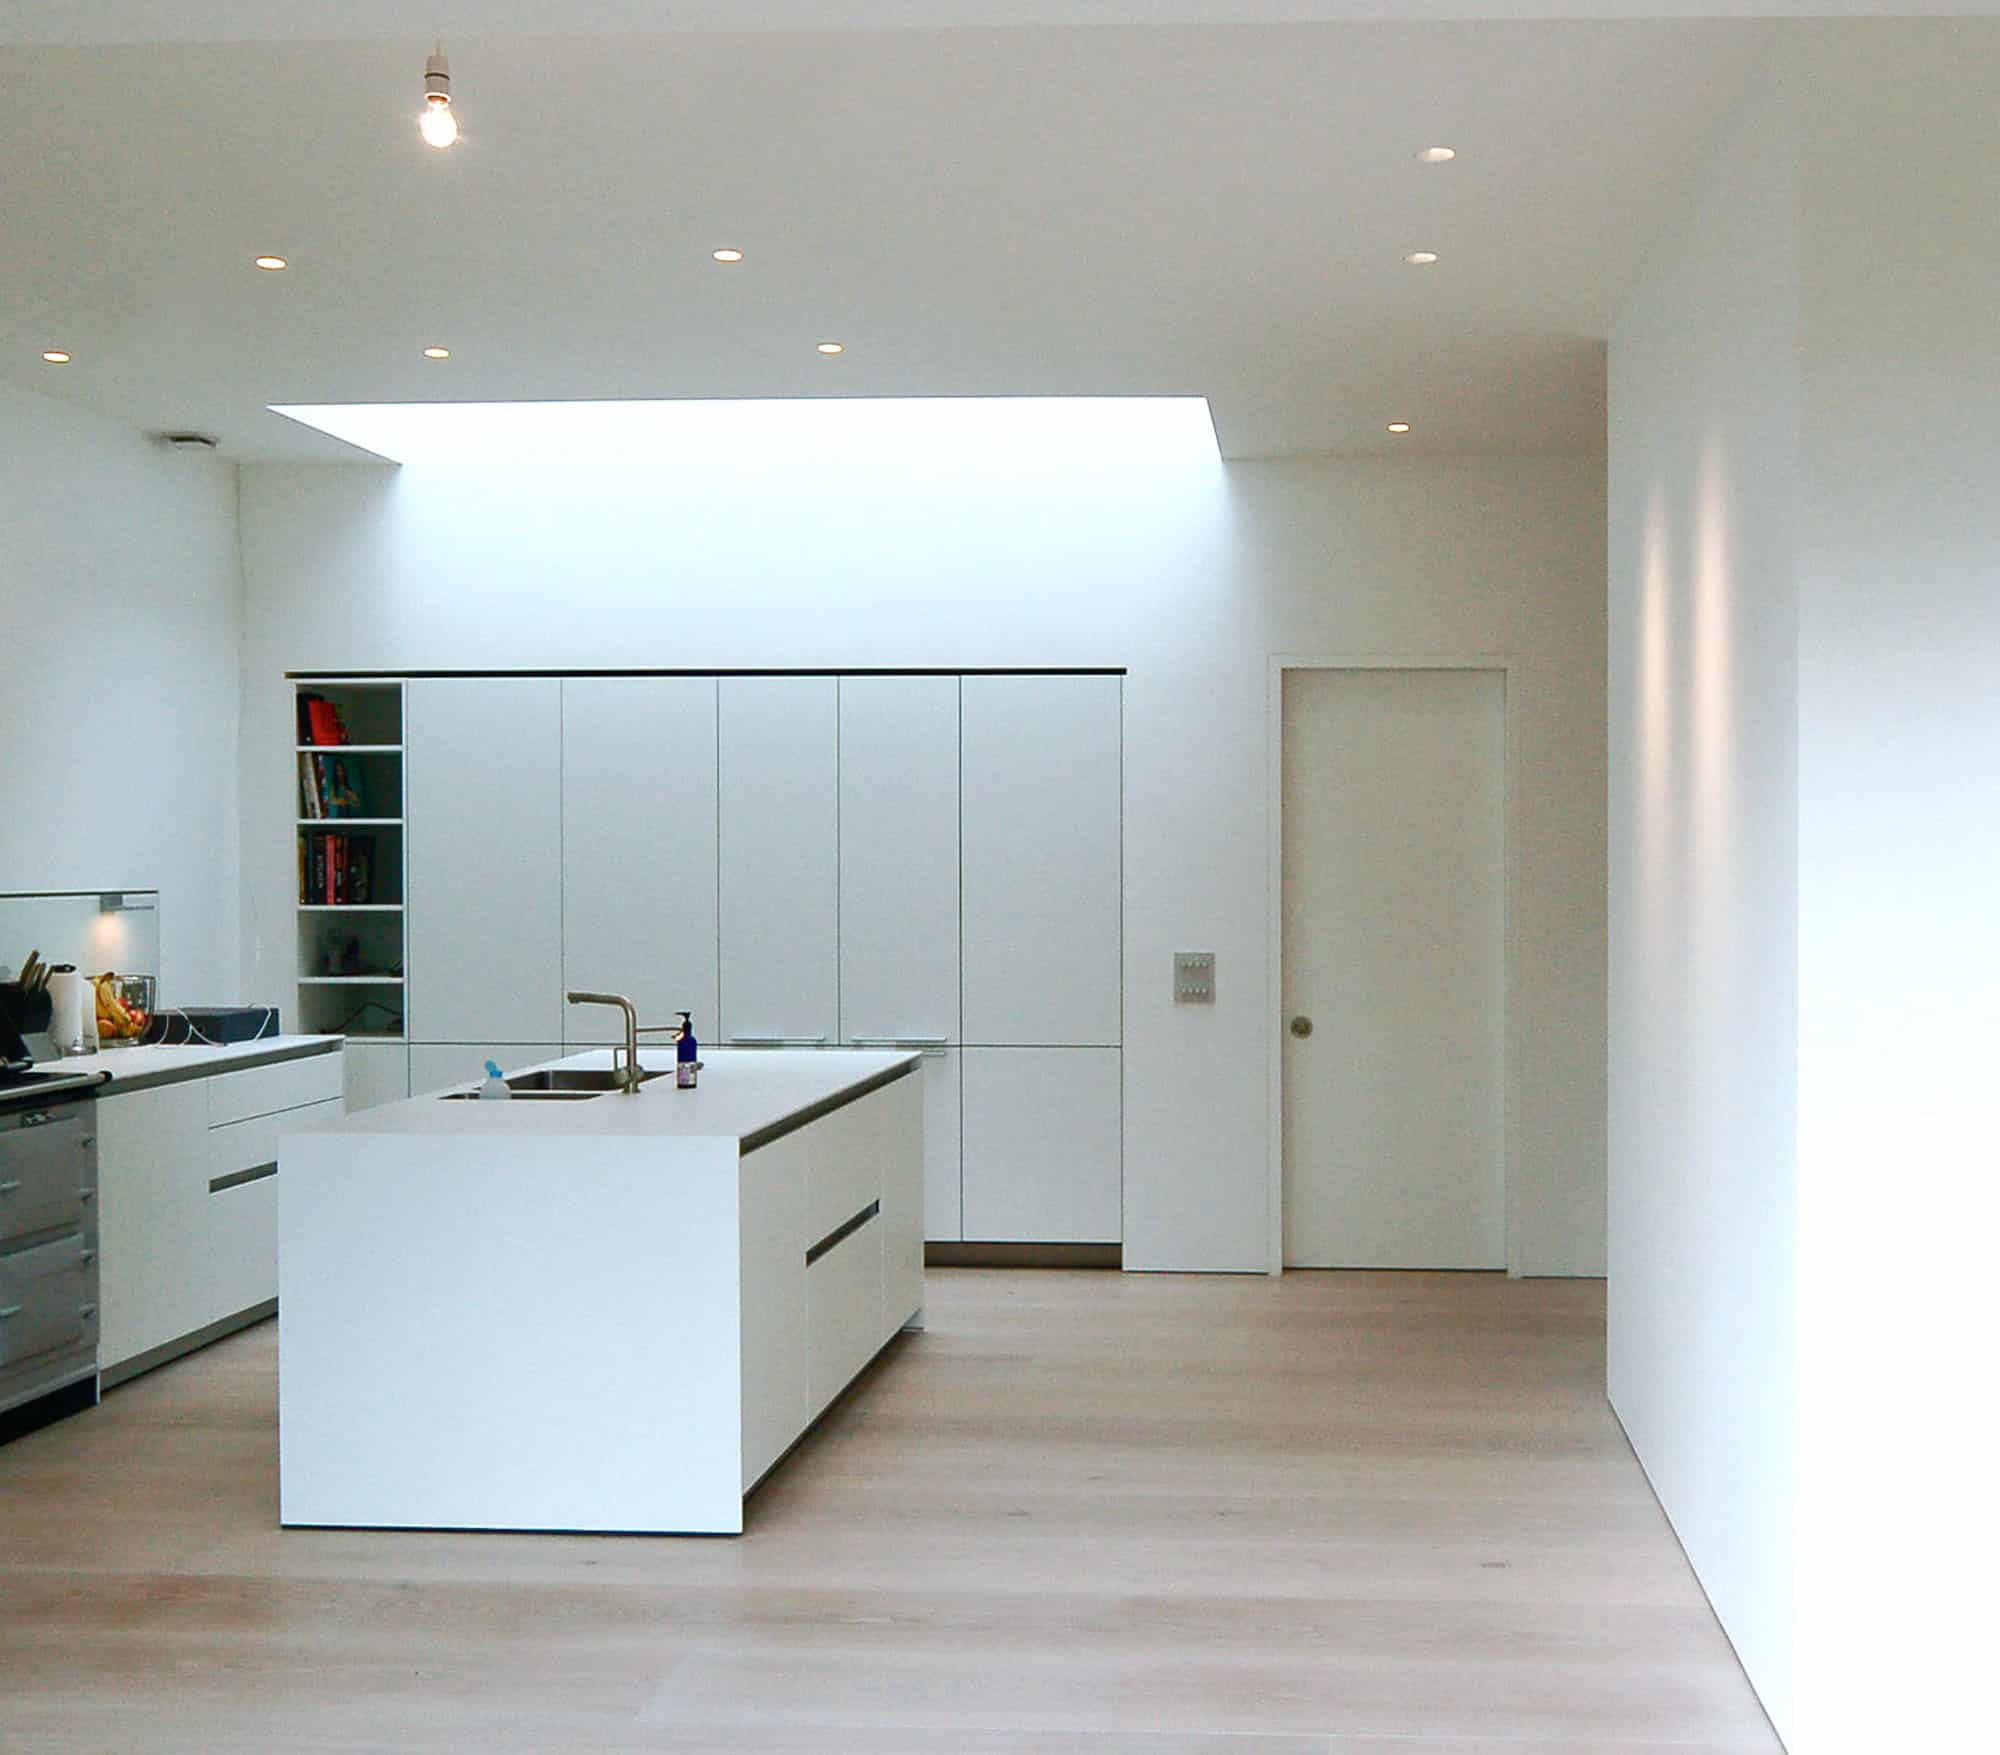 Kitchen Flooring Aberdeen: Emmett Russell Architects